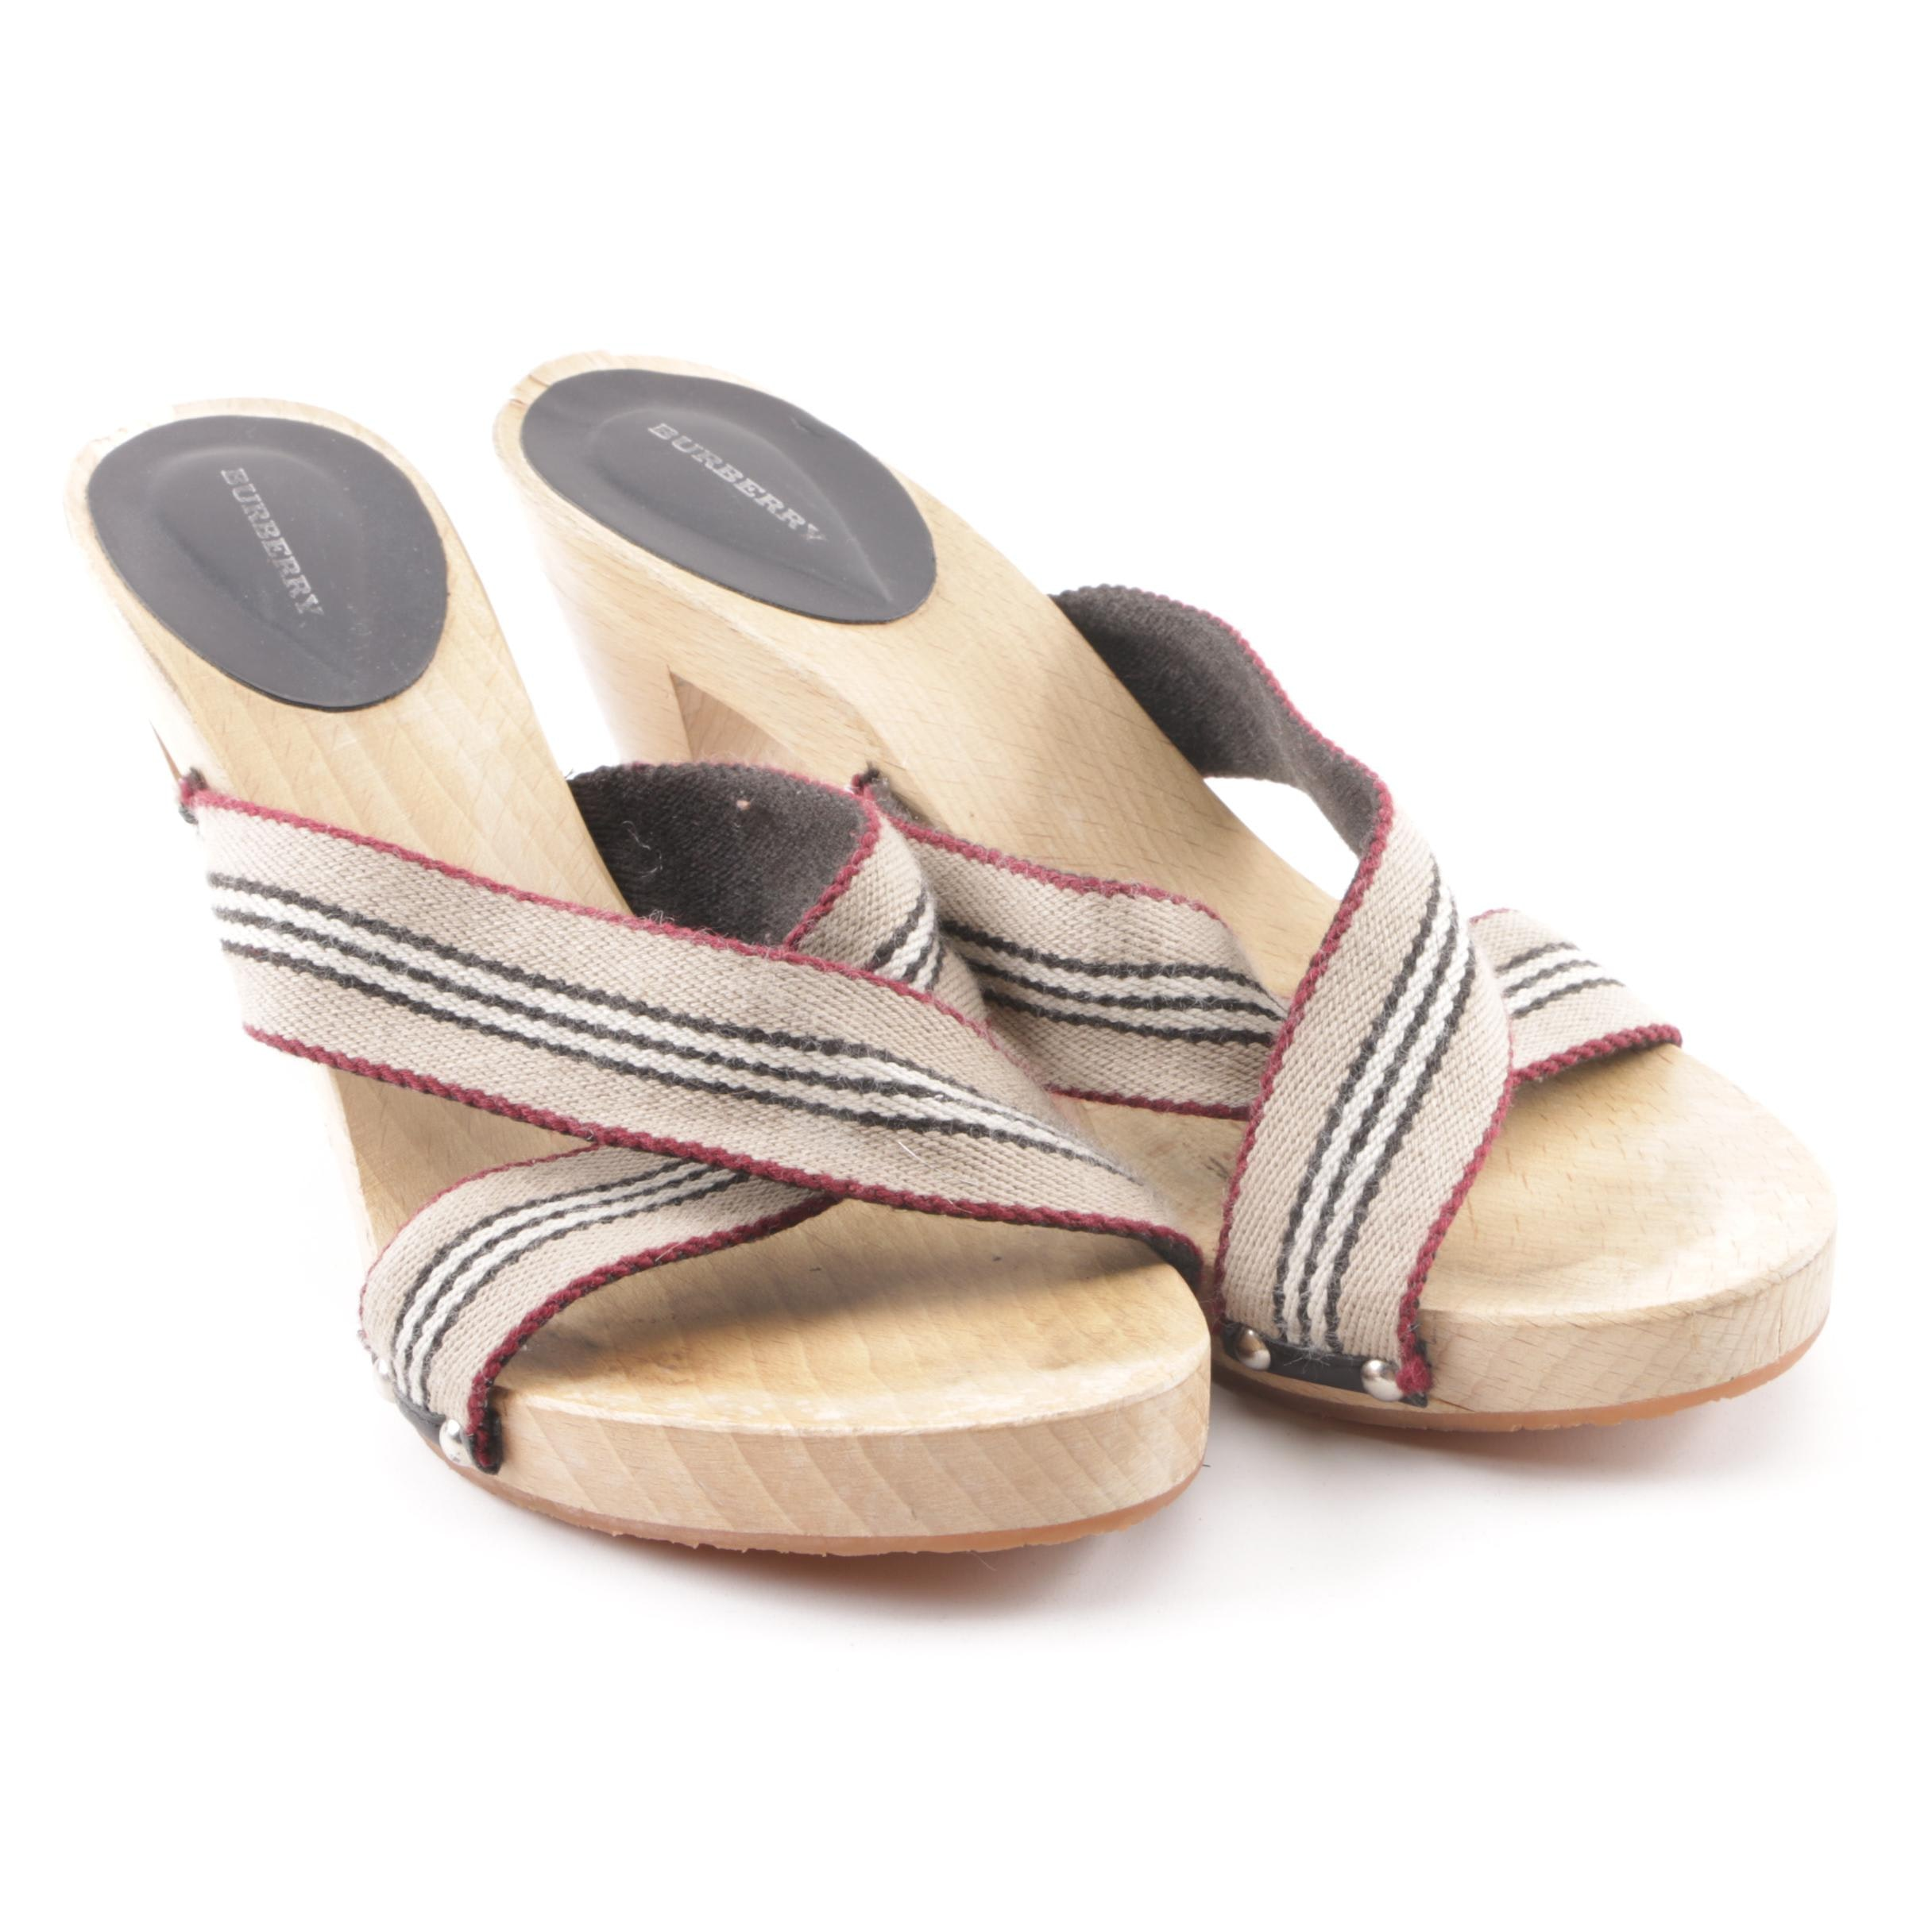 Burberry Canvas and Wood High-Heeled Sandals